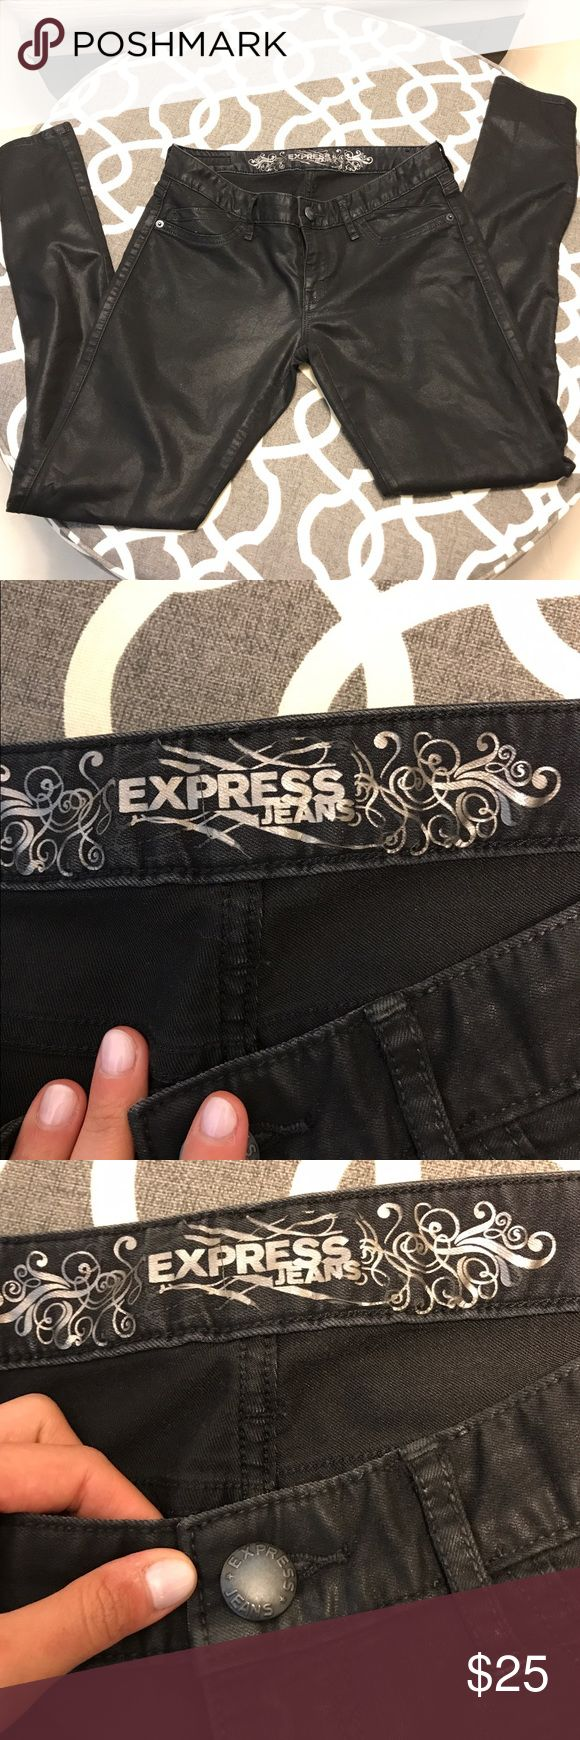 Shiny black skinny jeans Regular fit, low rise, Stella style. Black with shimmer makes it look like faux leather! Cuz at ankle to show off your fabulous shoes! Express Jeans Ankle & Cropped